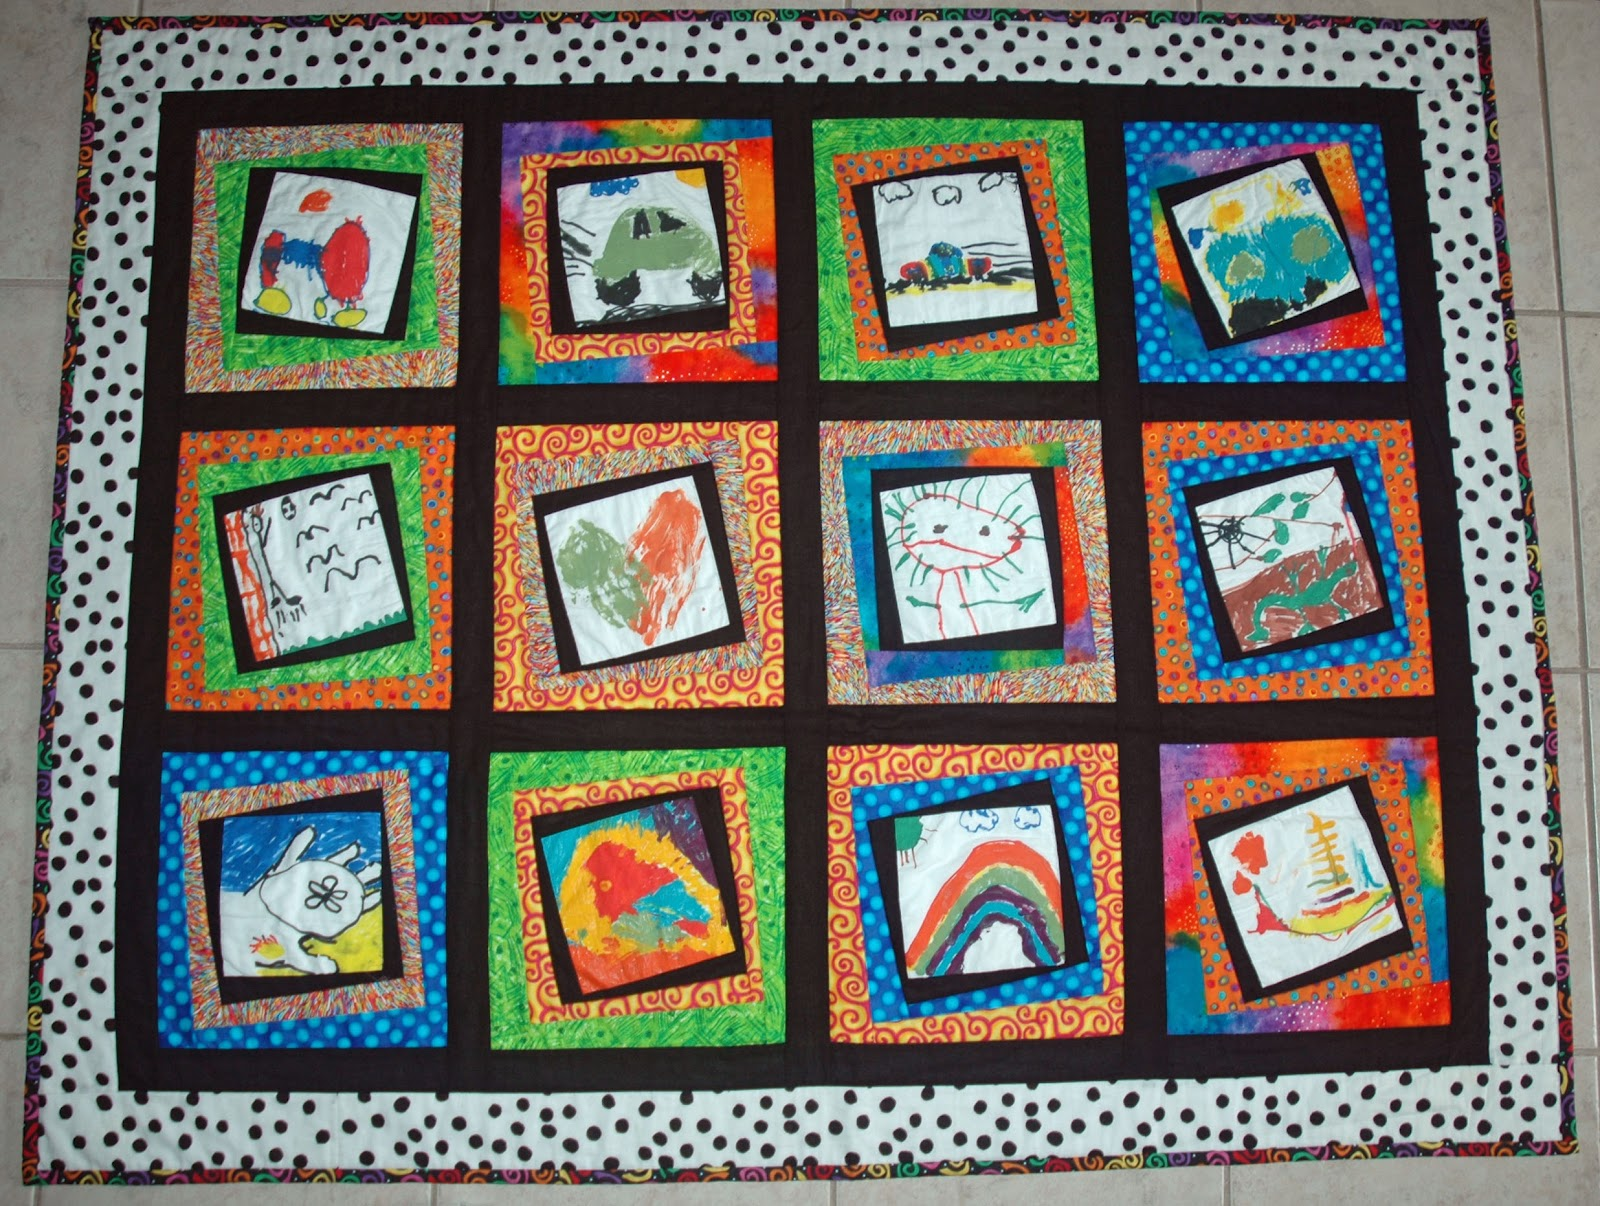 IslandLife Quilts: Grab a Kleenex and Let's Talk about ...